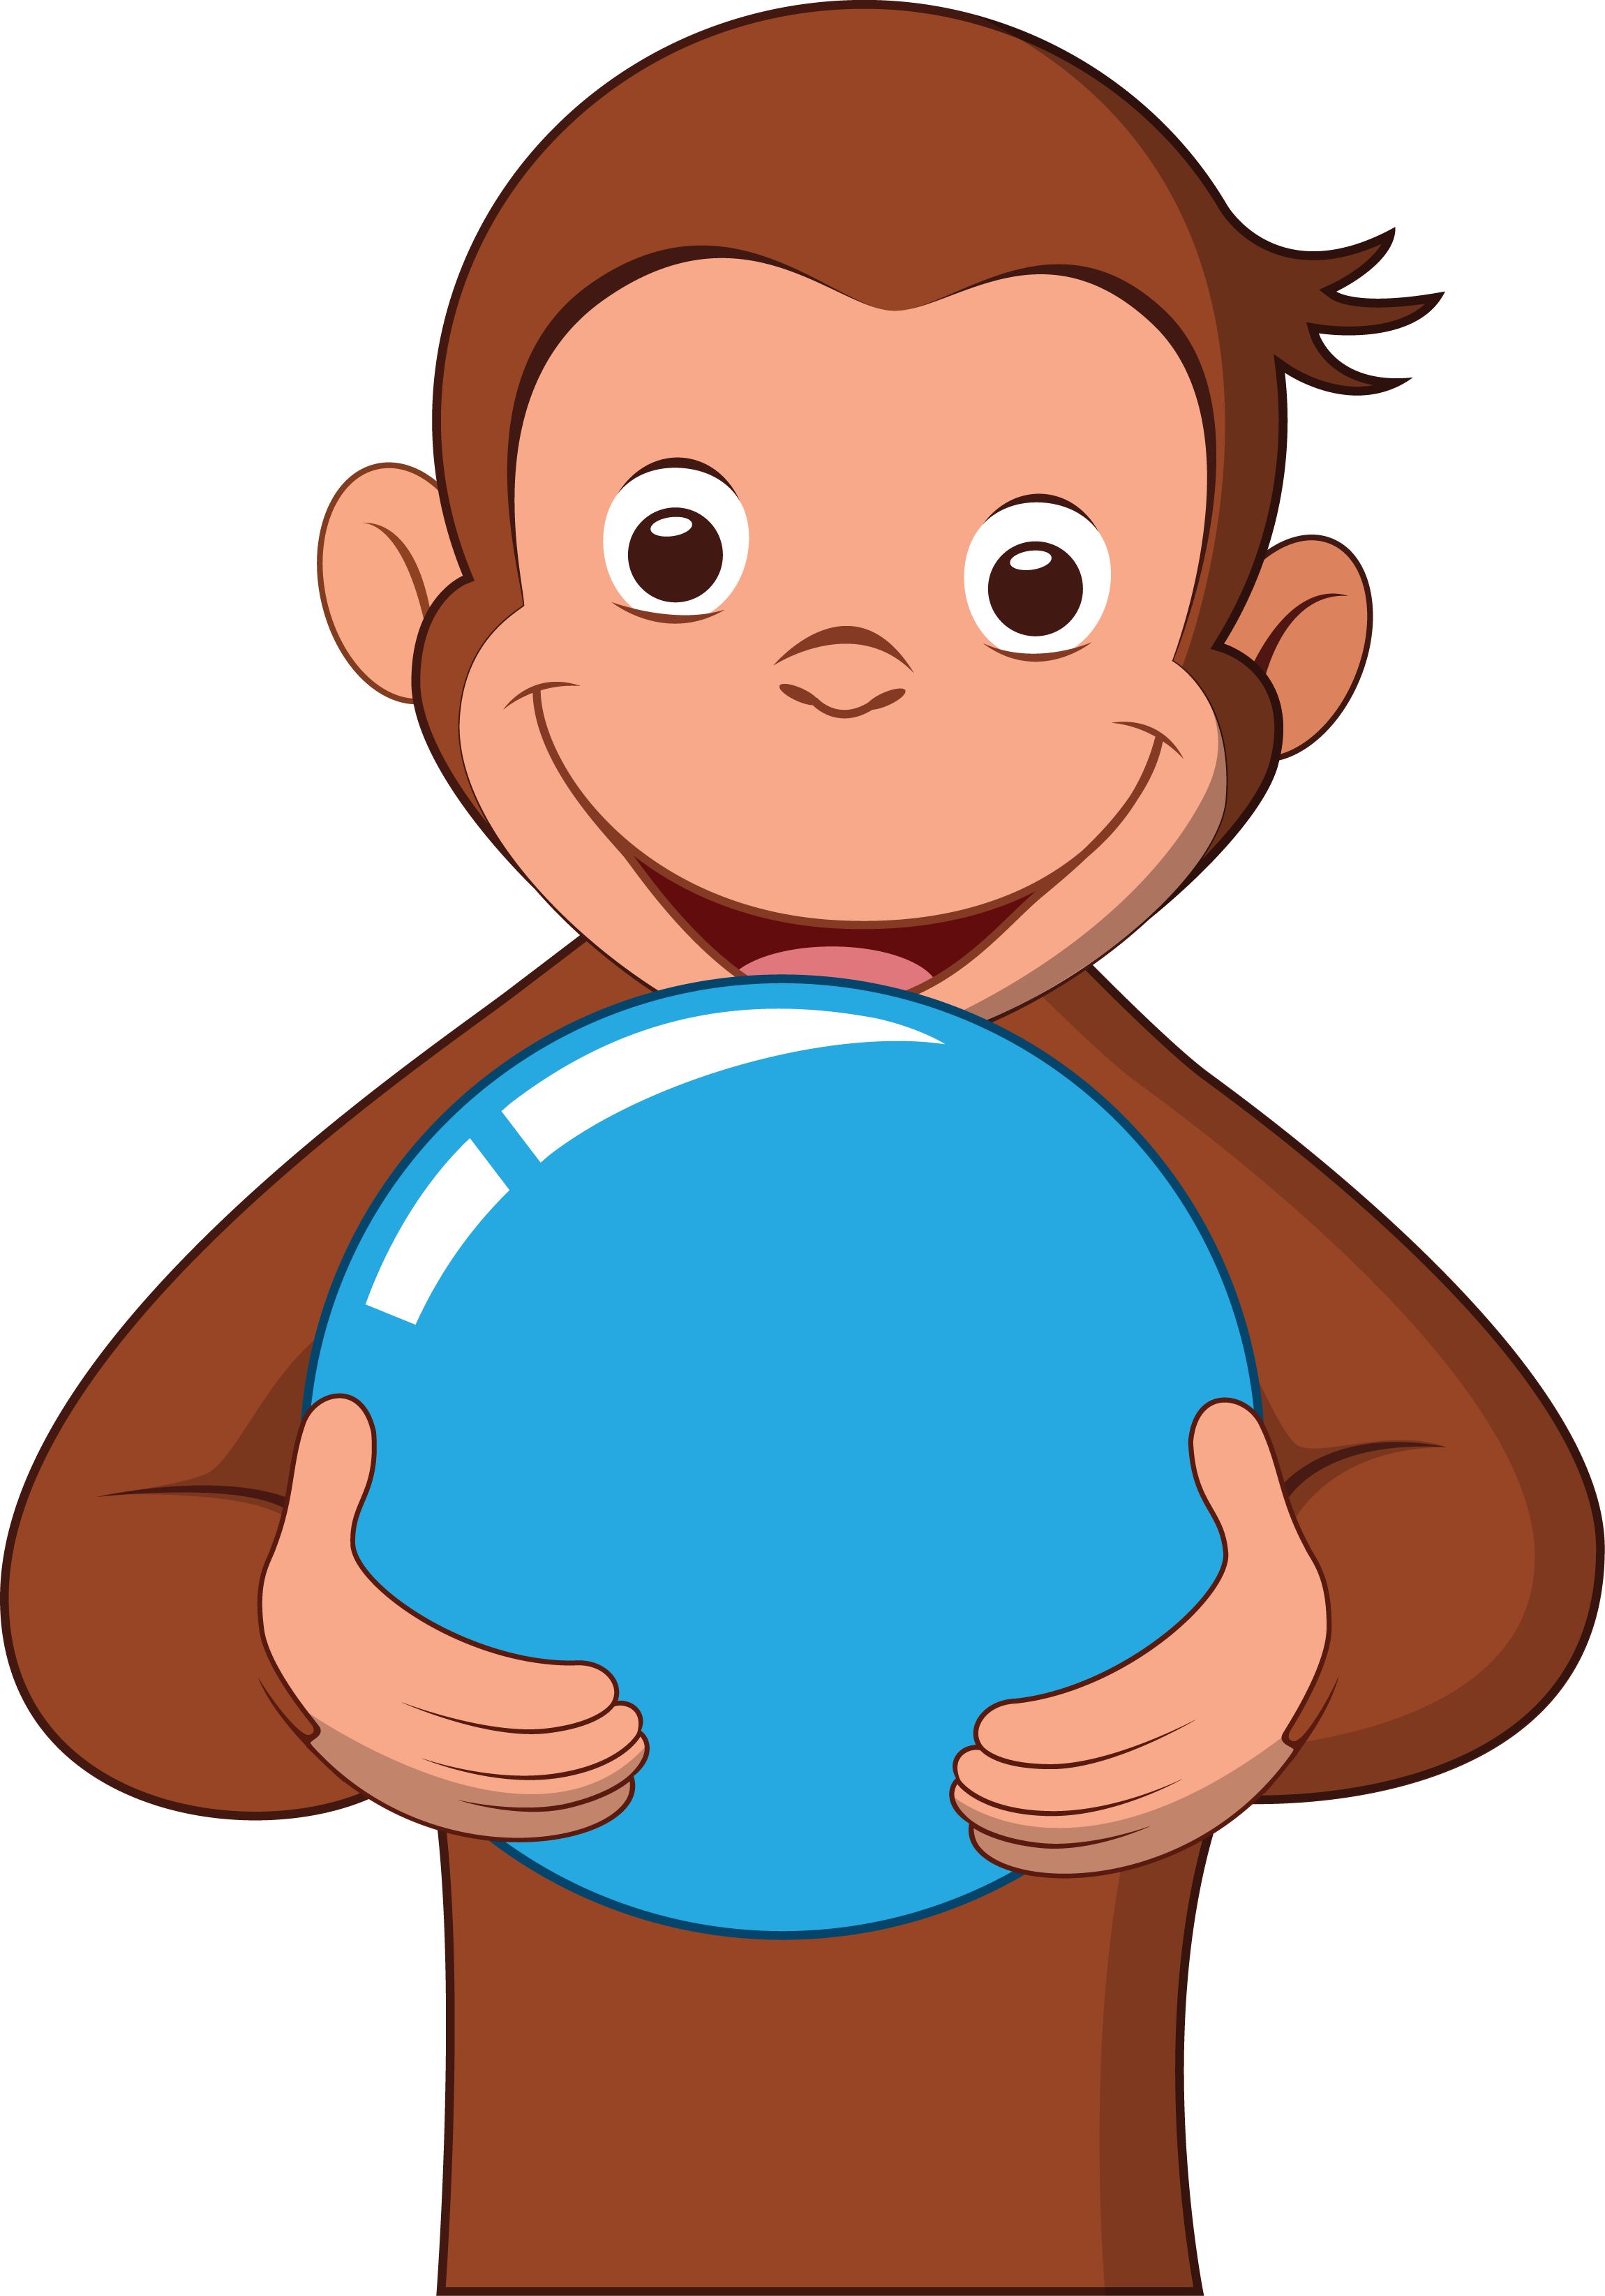 Curious George Google Search Wallpaper Wpt8403466